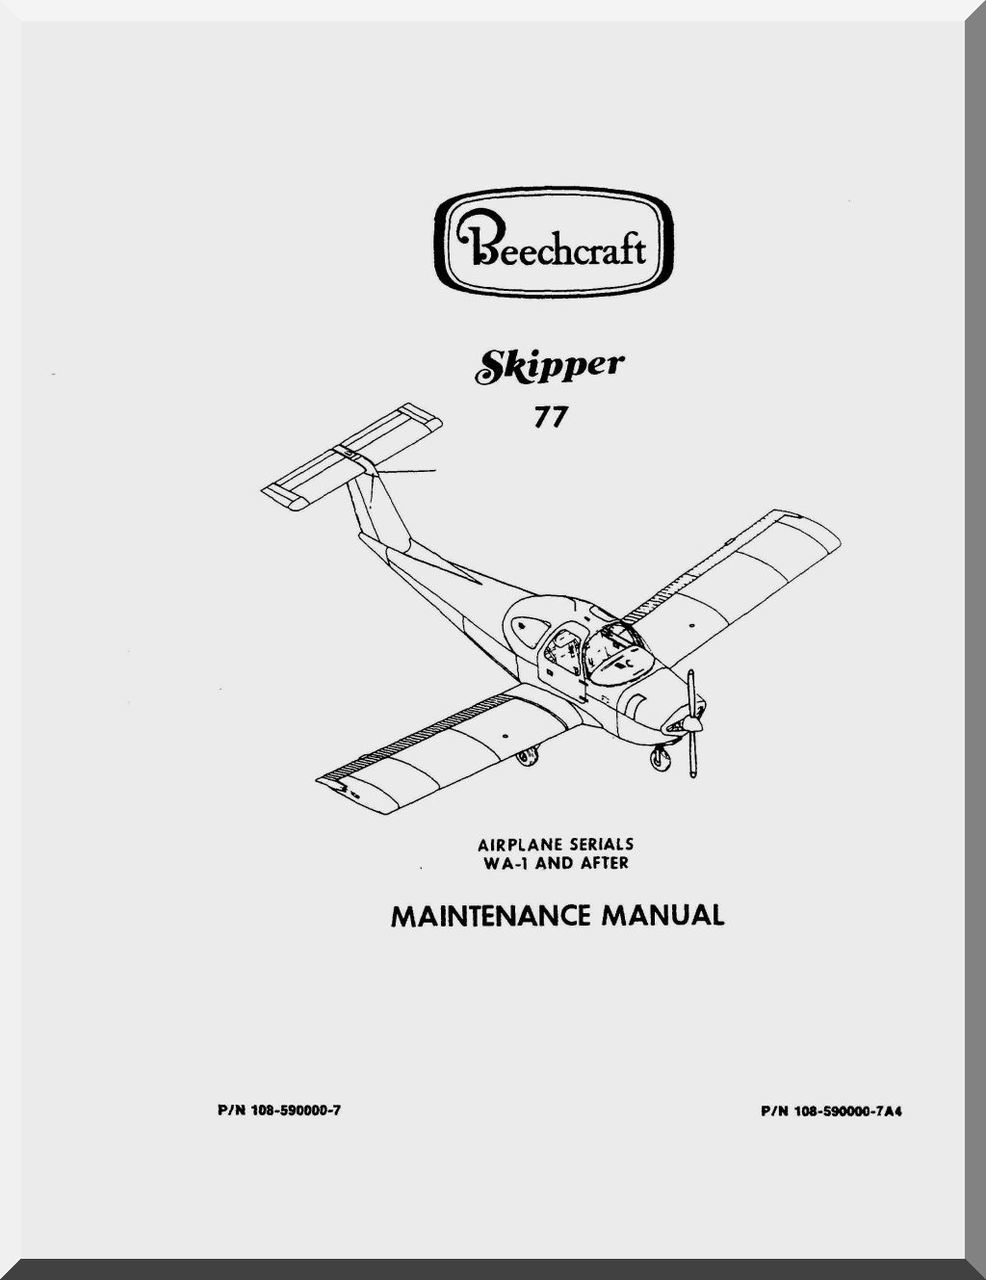 Beechcraft Skipper 77 Aircraft Maintenance Manual - - Aircraft Reports -  Manuals Aircraft Helicopter Engines Propellers Blueprints Publications